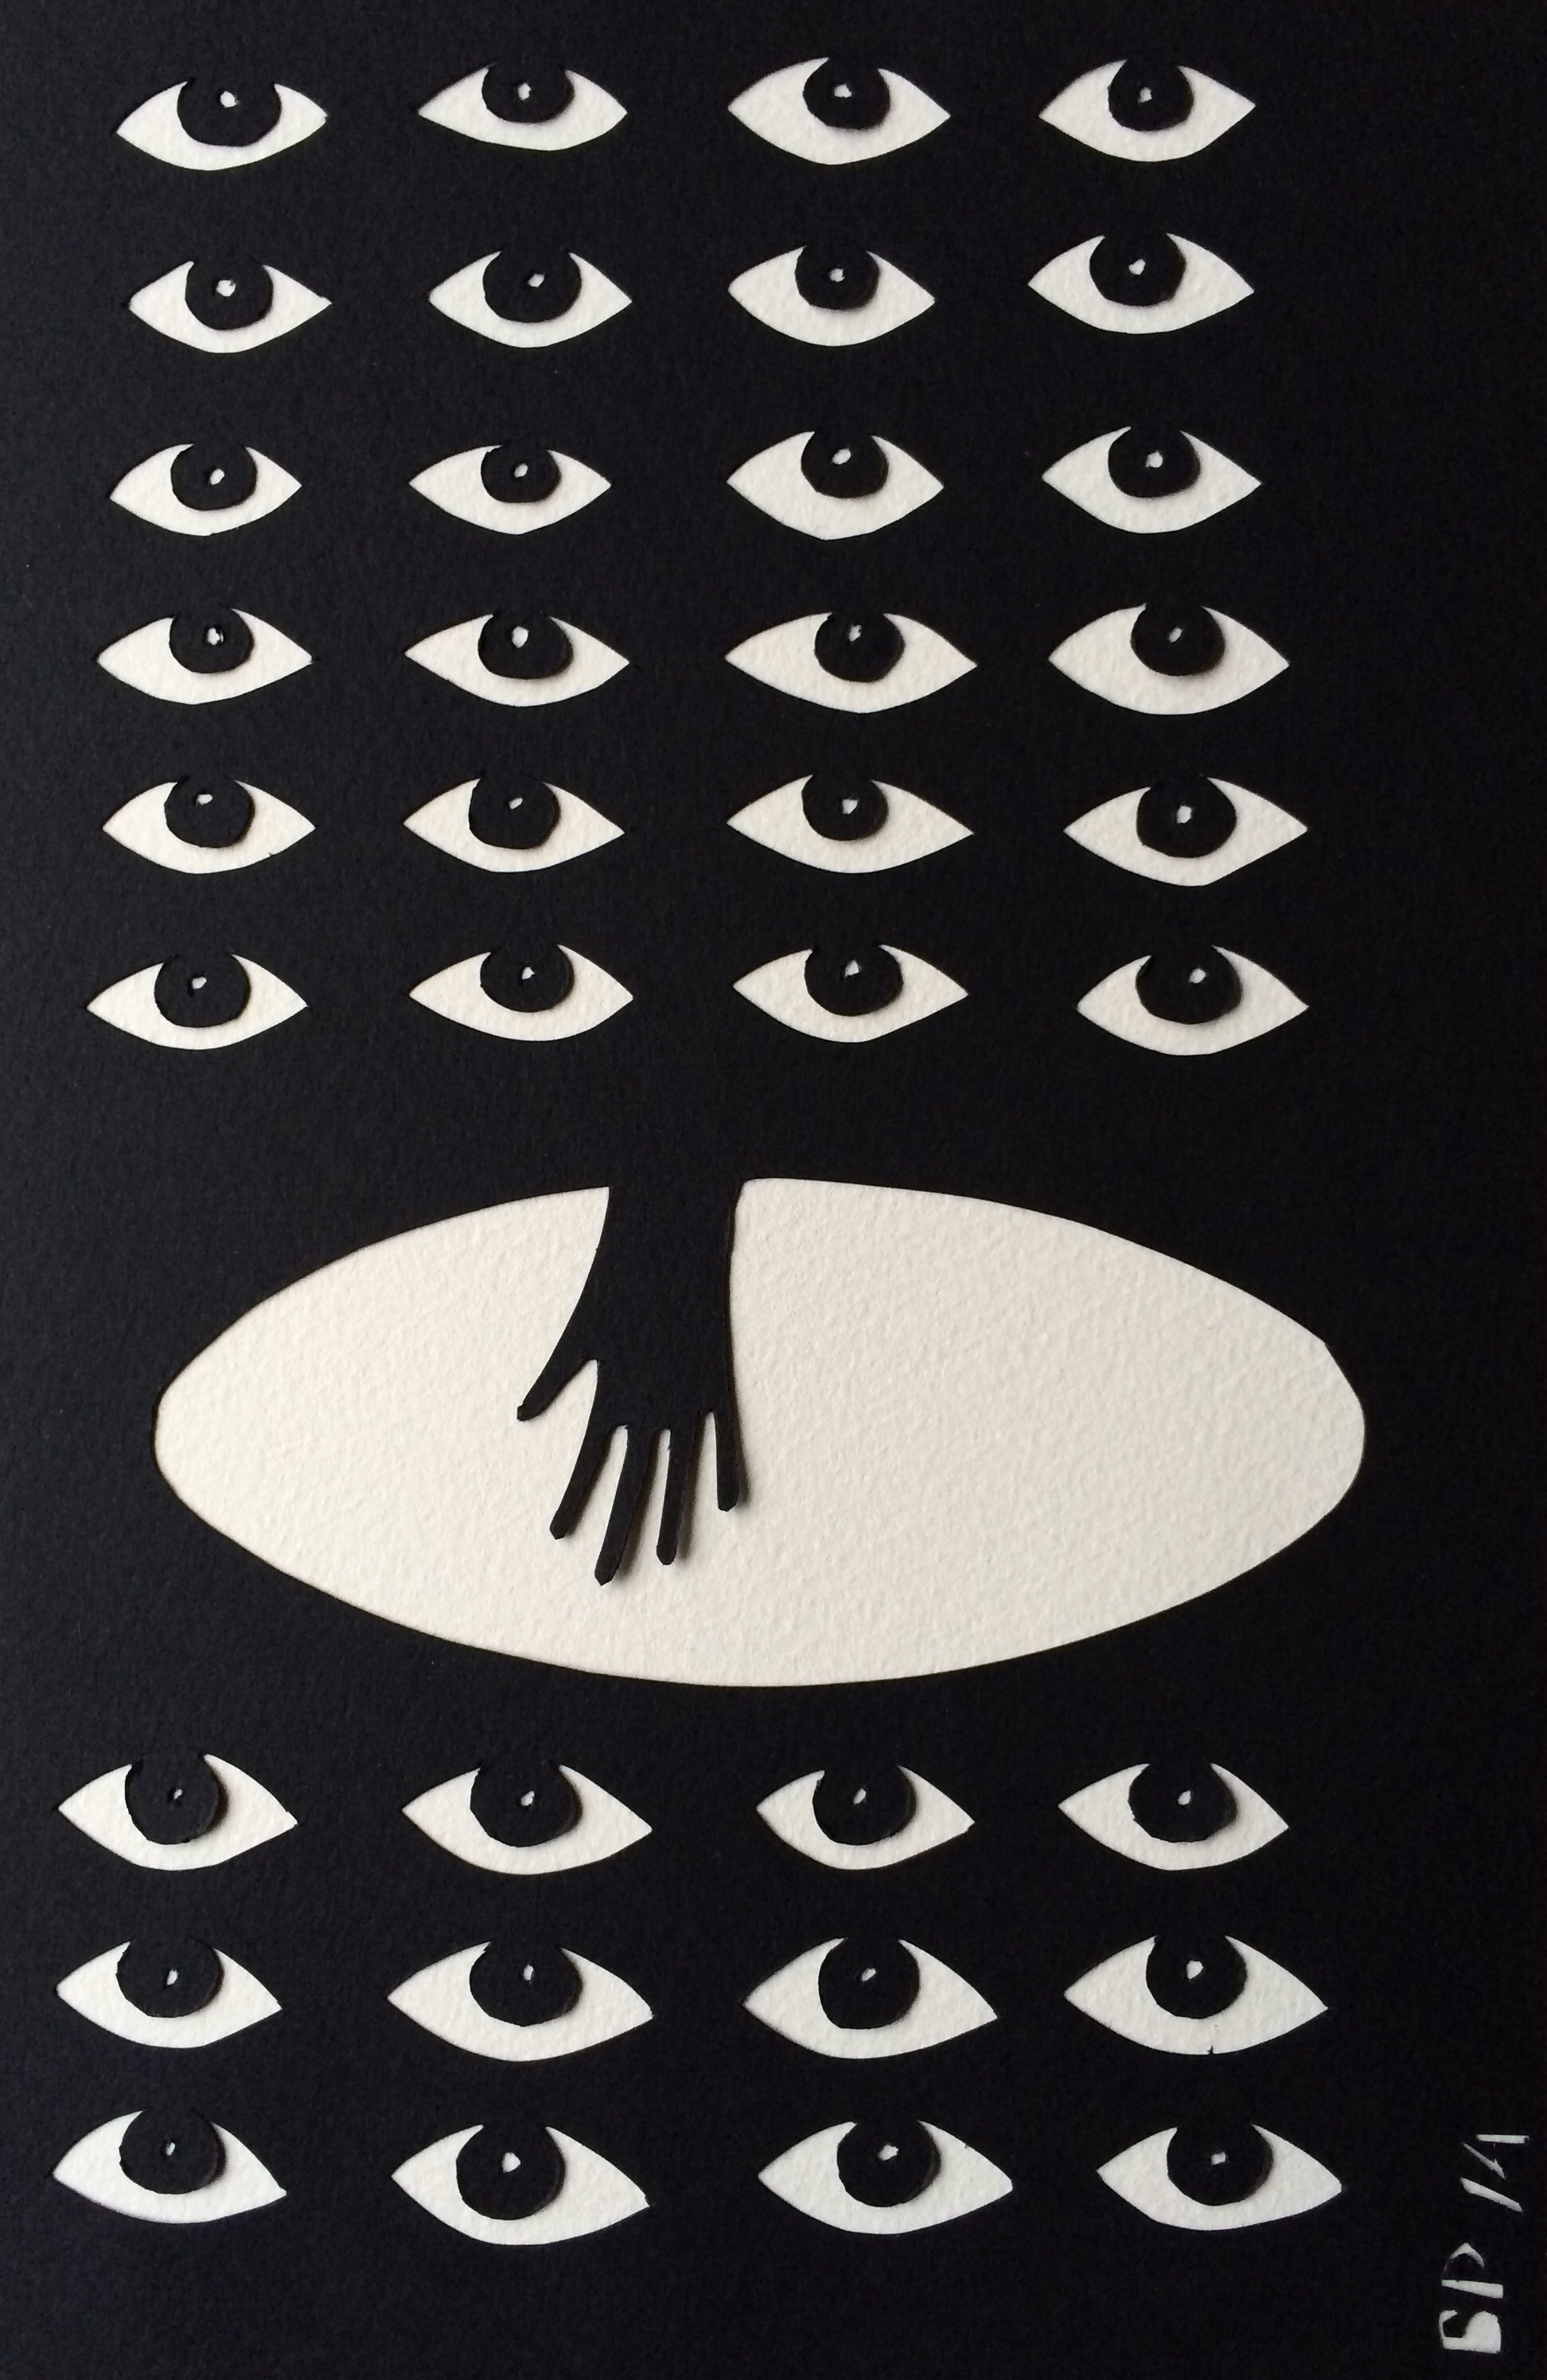 Night of a Thousand Eyes